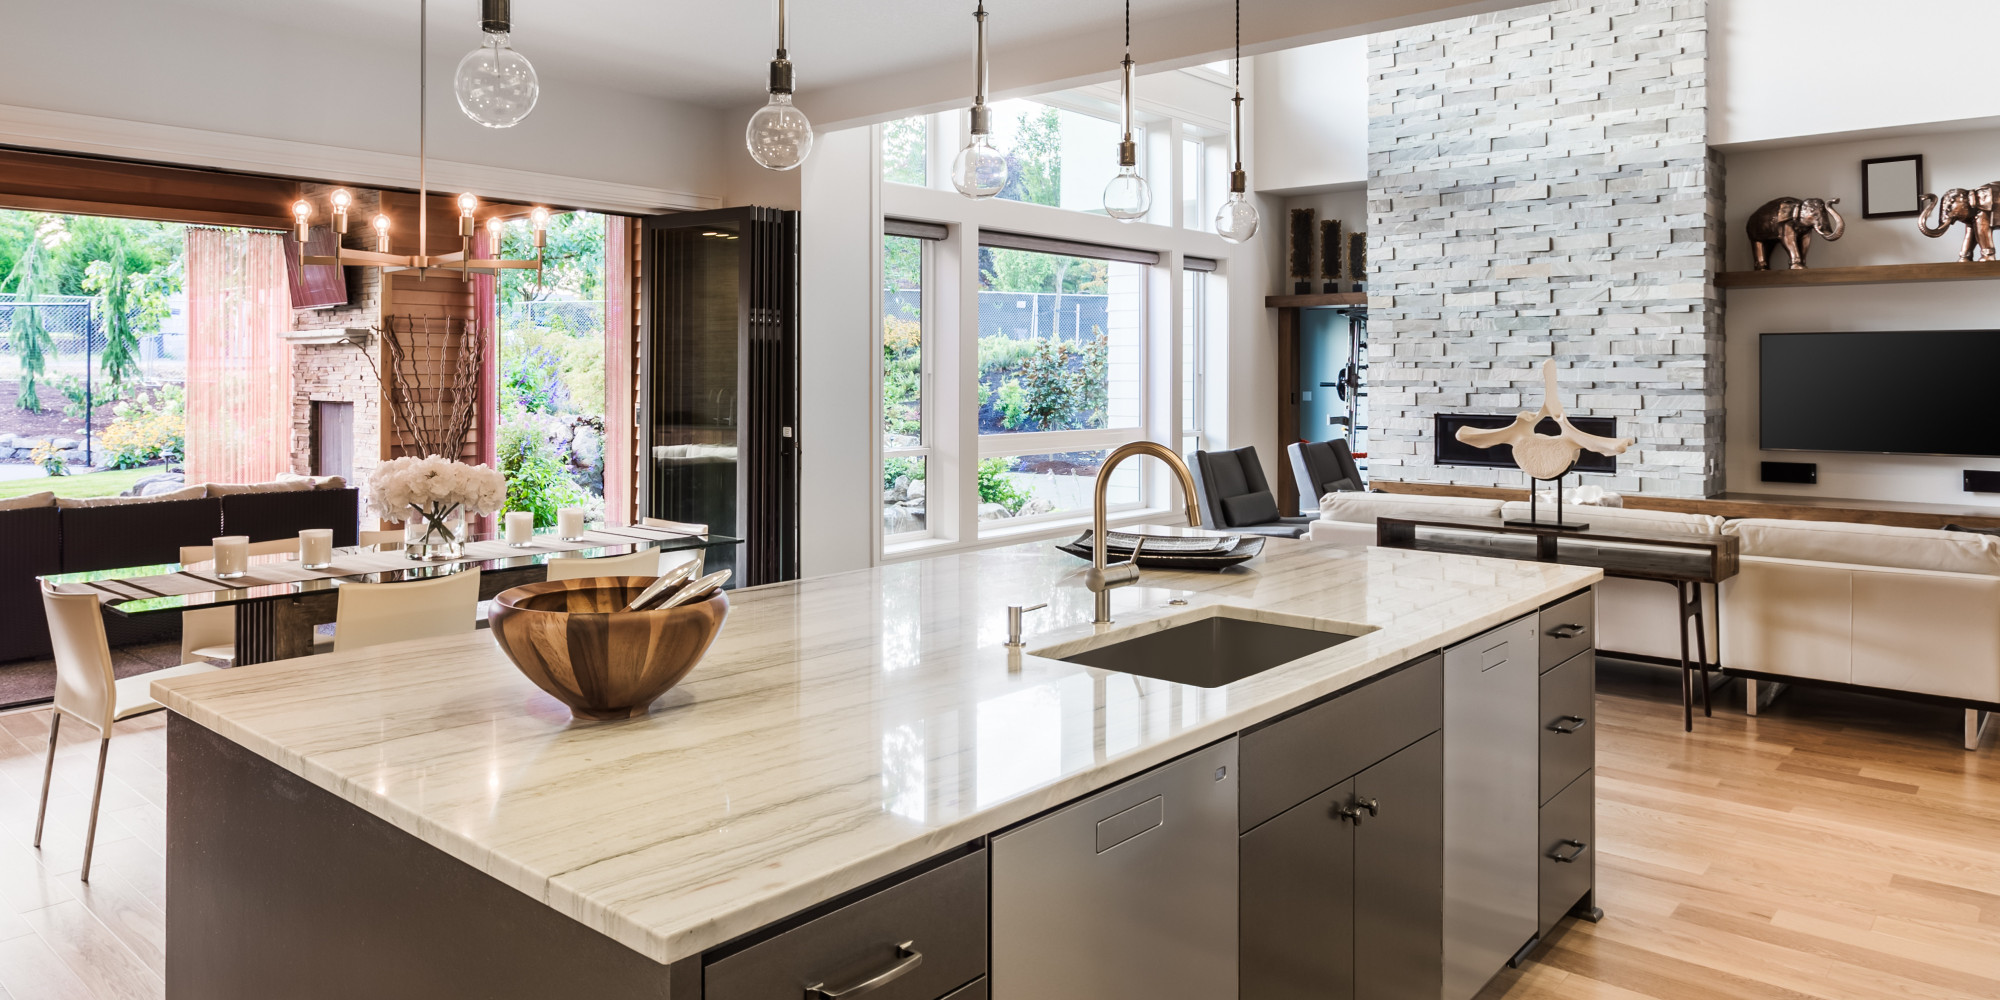 Easy Ways To Budget Kitchen And Bathroom Remodeling